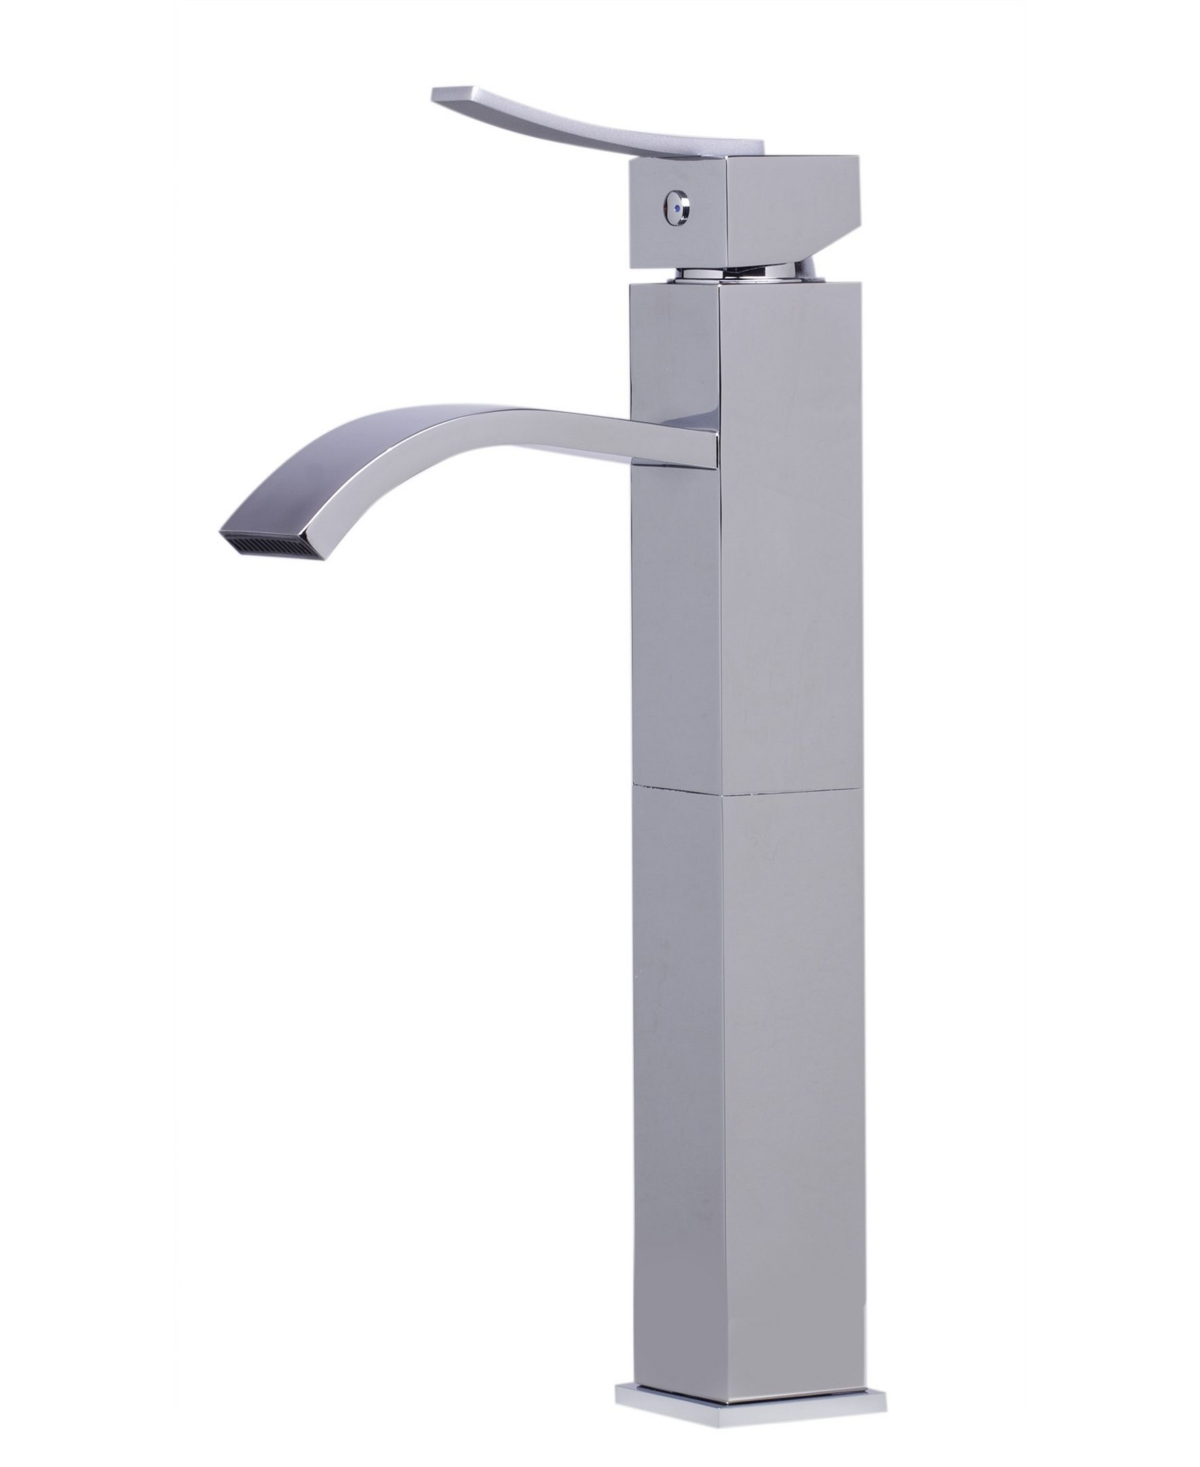 Alfi brand Tall Polished Chrome Tall Square Body Curved Spout Single Lever Bathroom Faucet Bedding